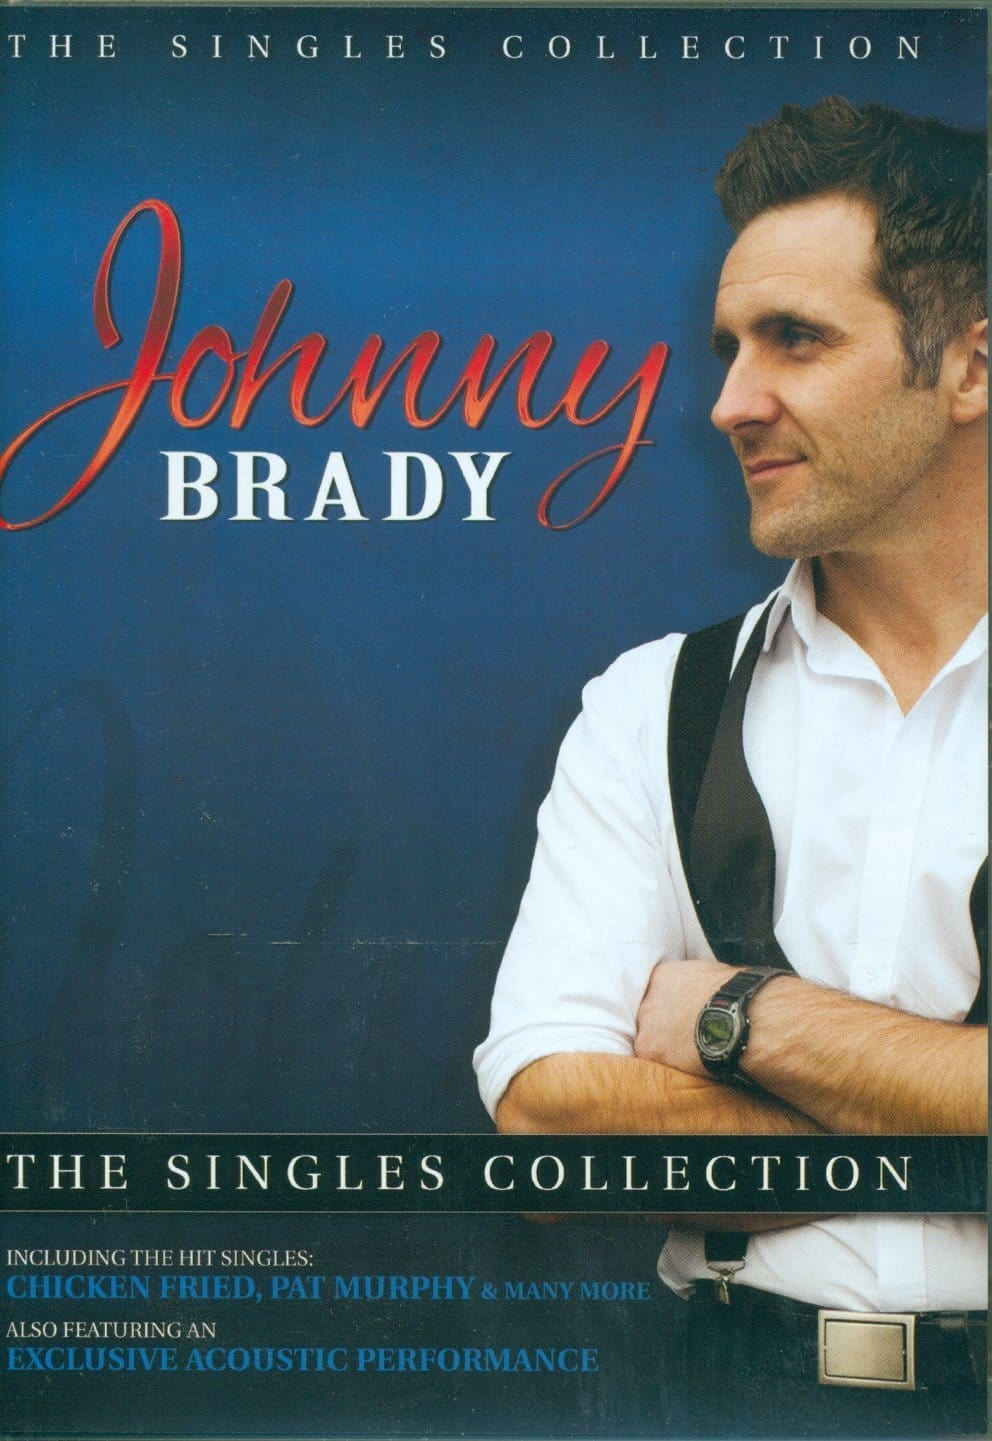 Singles Collection: Johnny Brady [CD]